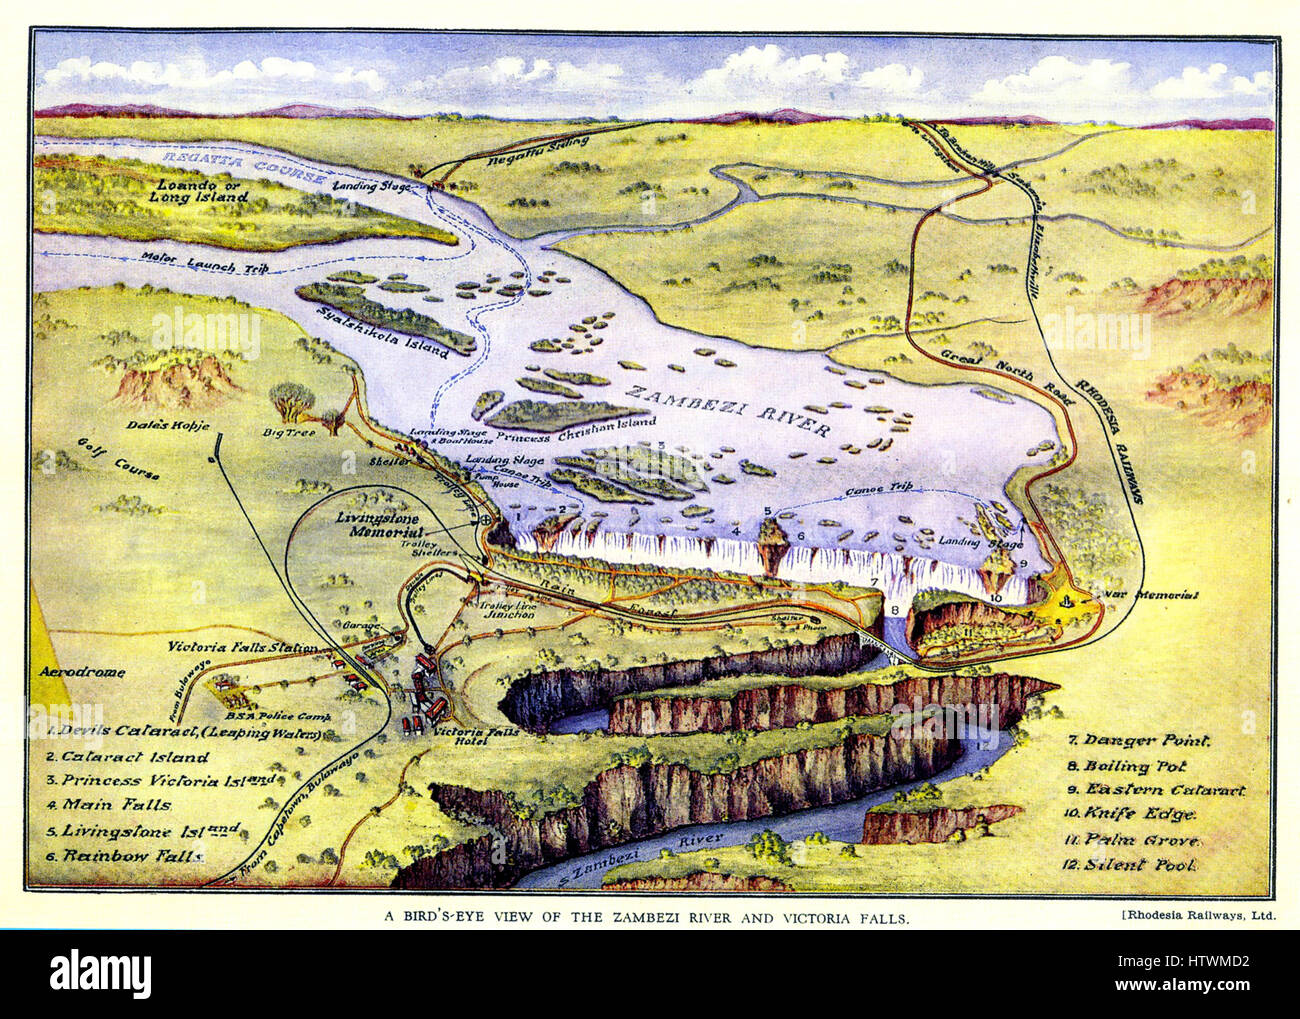 RHODESIA RAILWAYS POSTER about 1897. Note the various river trips, regatta course and golf course labelled as attractions - Stock Image